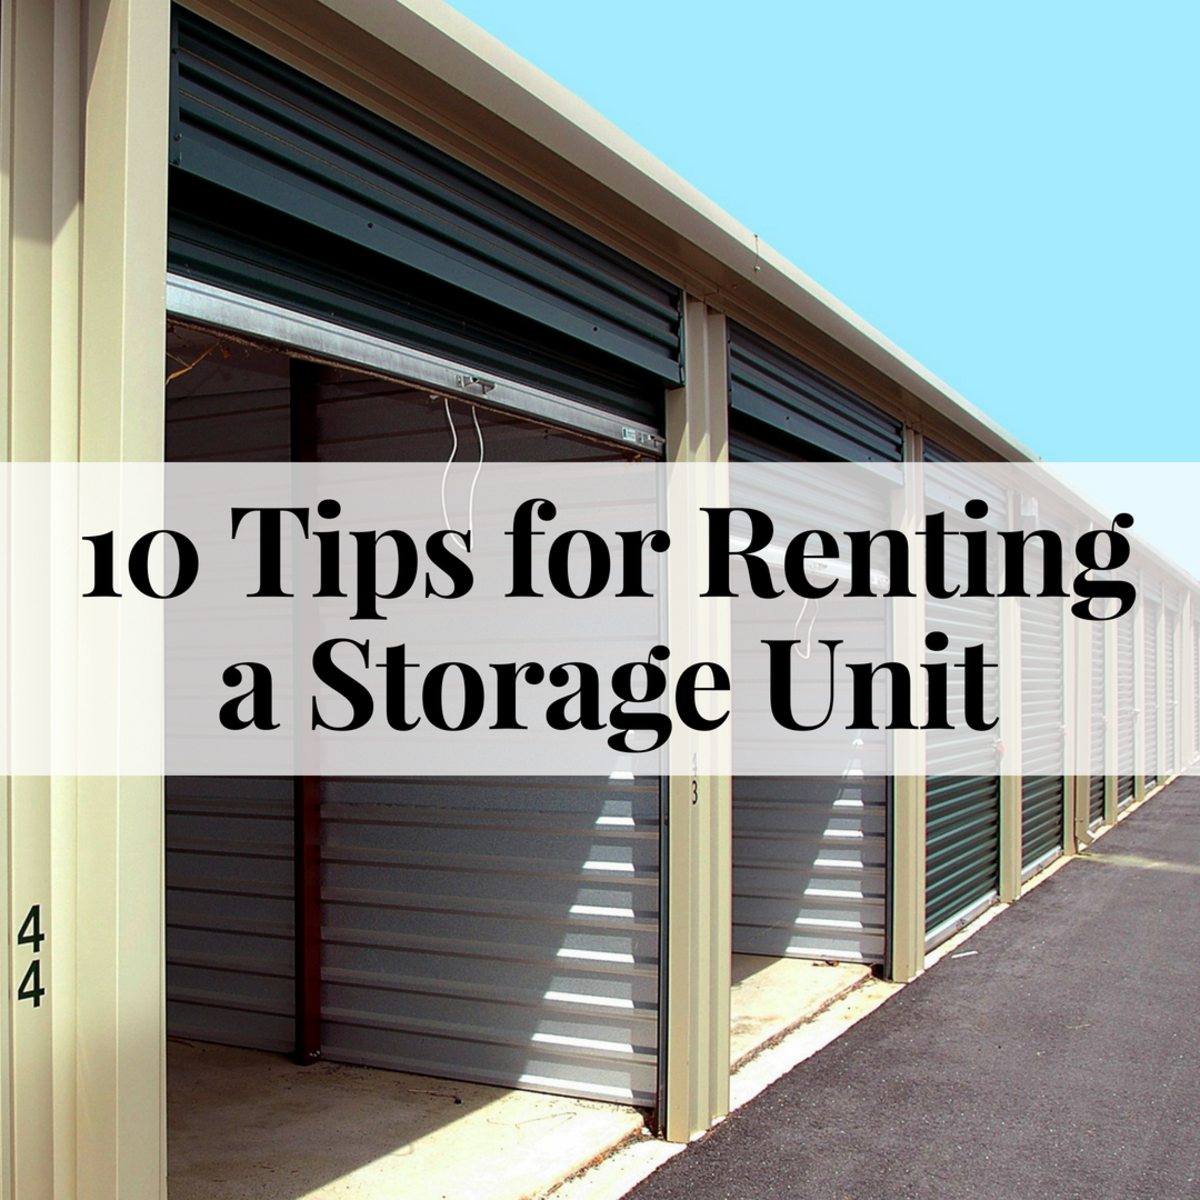 & 10 Tips for Renting a Storage Unit | Dengarden